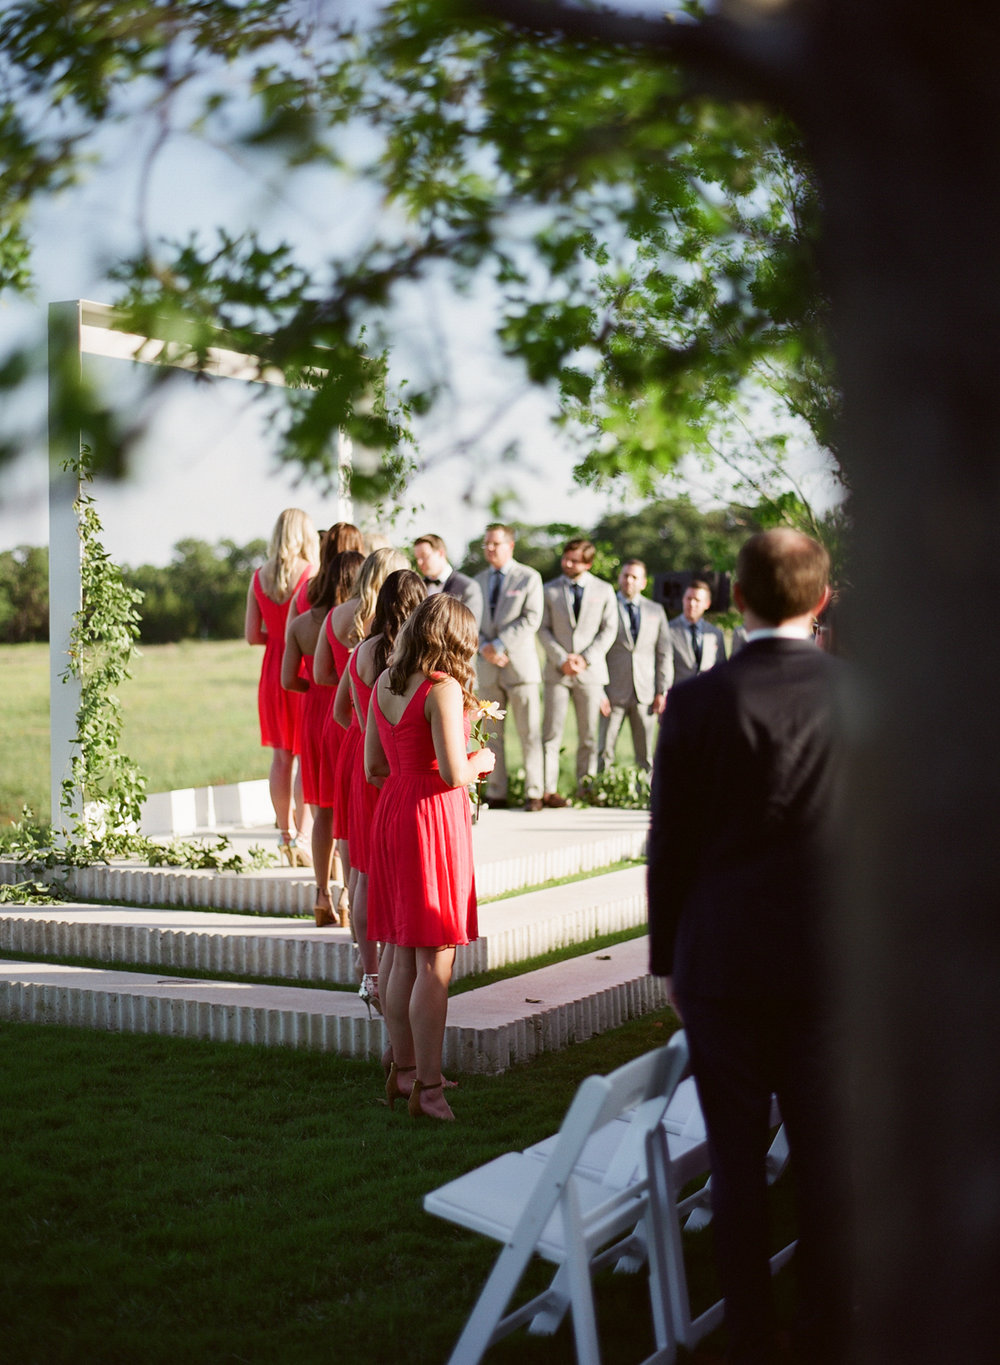 PROSPECT_HOUSE_WEDDING_AUSTIN_TX_BY_MATTHEW_MOORE_PHOTOGRAPHY_00413.jpg